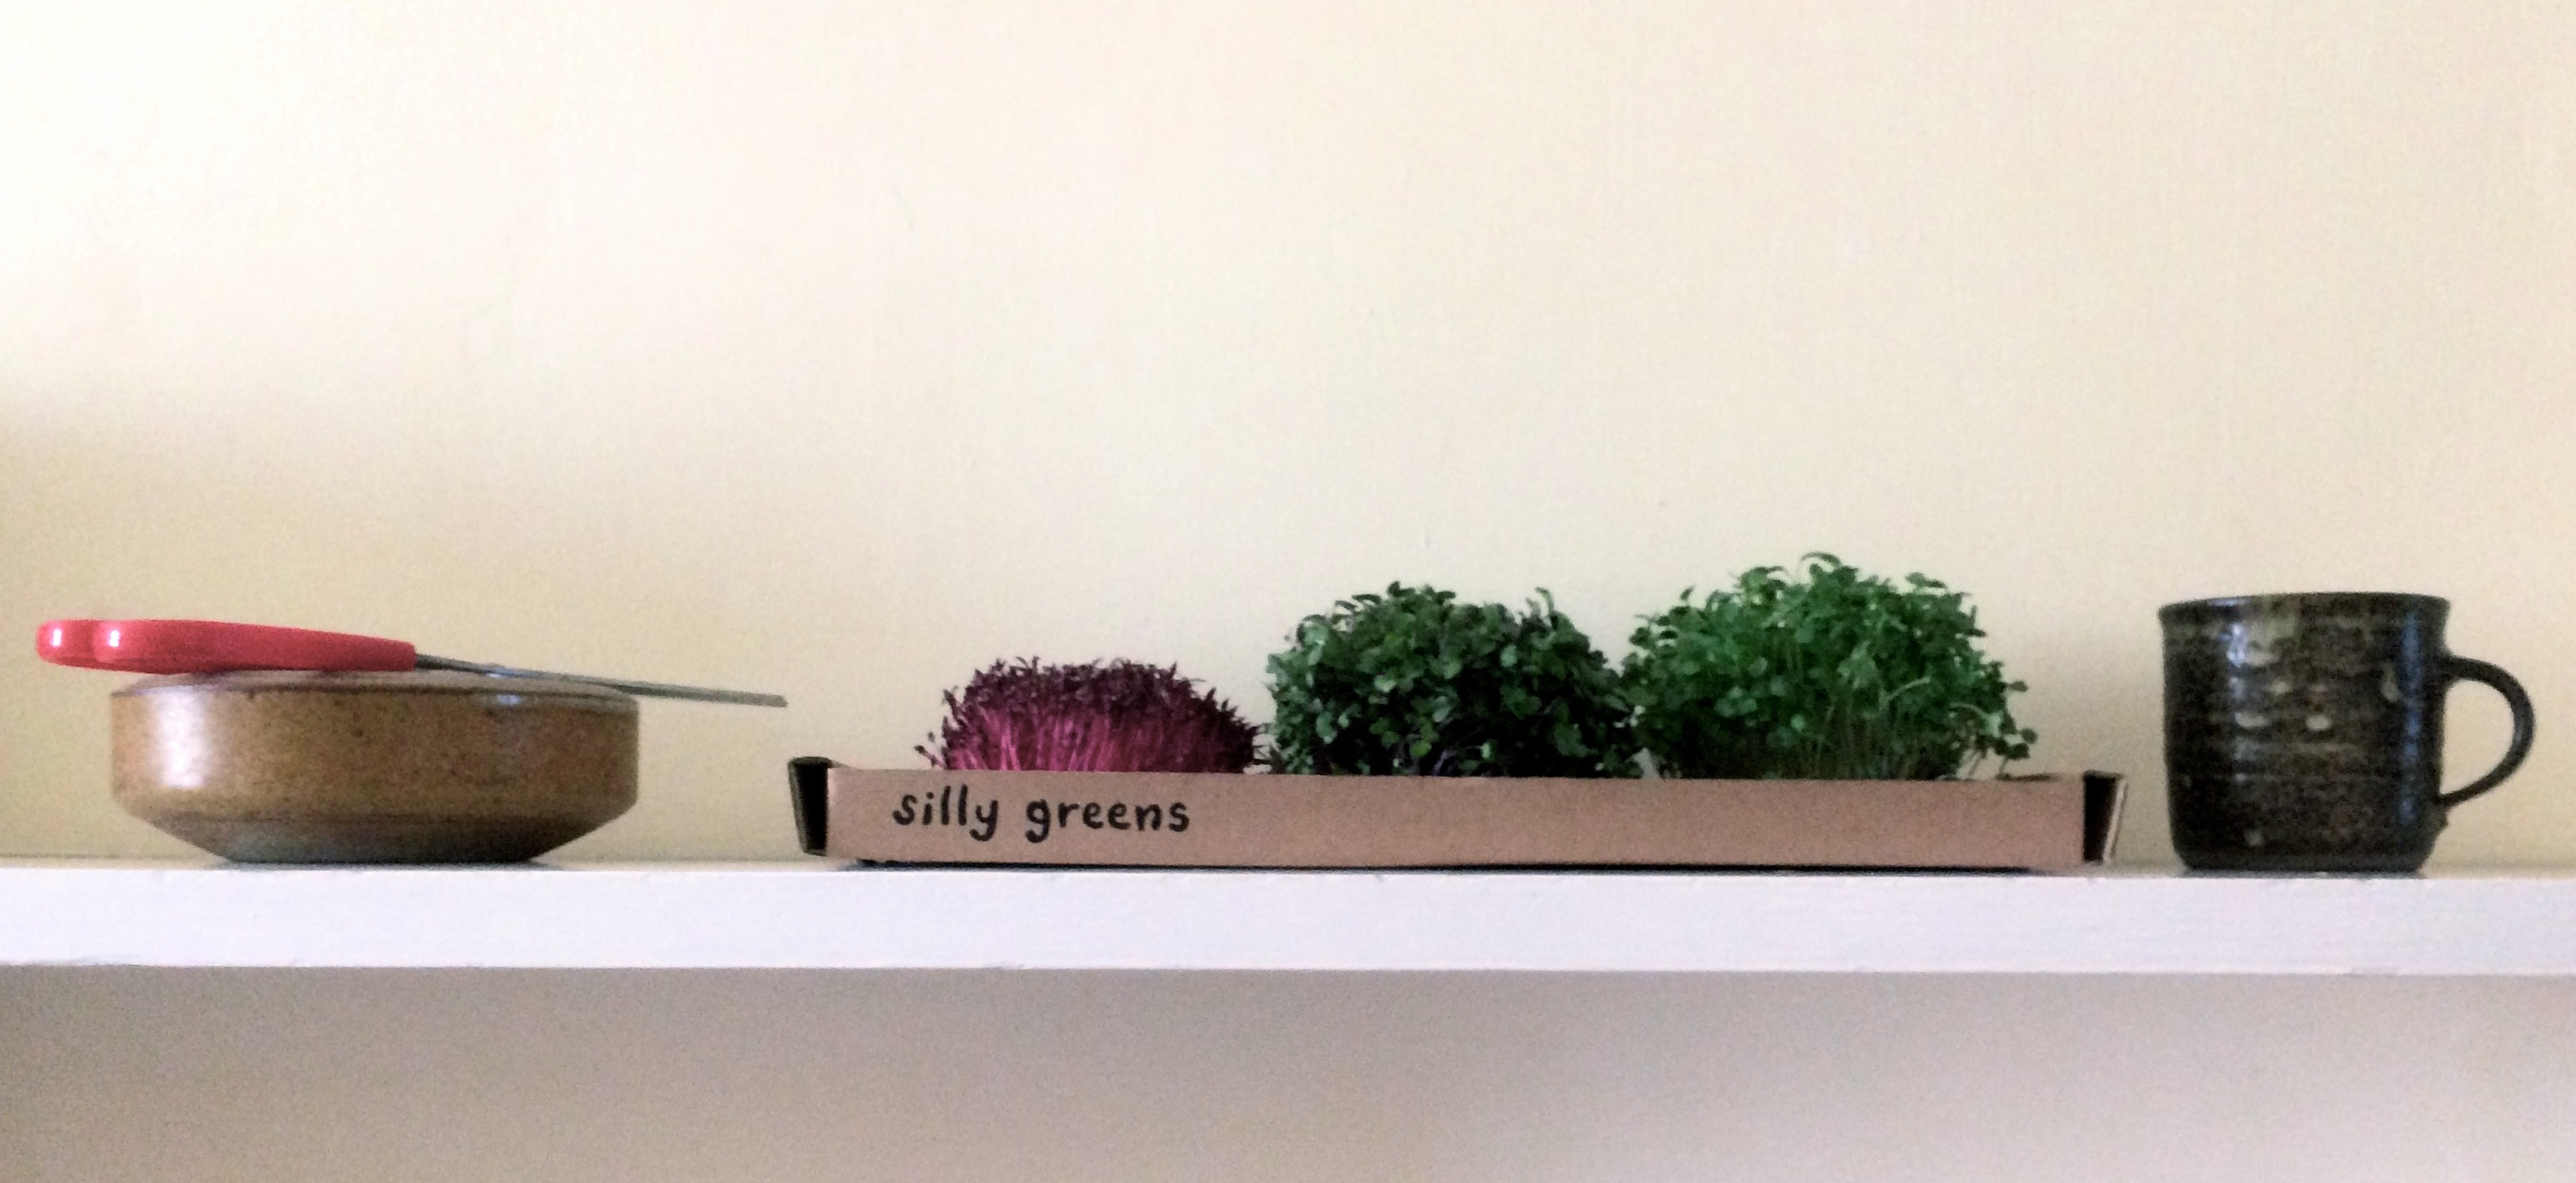 Microgreens growing in your kitchen &